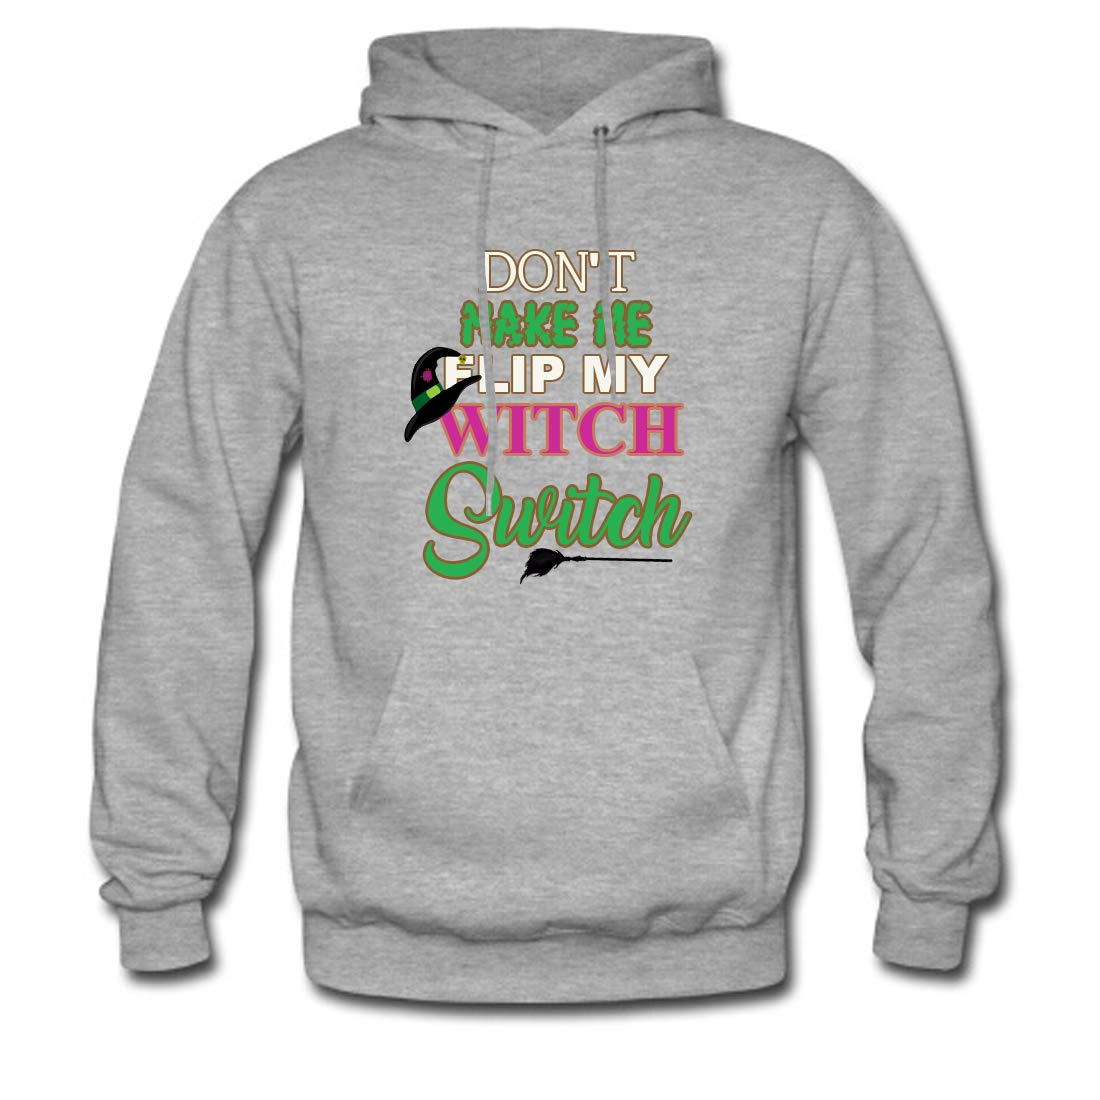 Mens Classic Pullover Hoodie Sweatshirt,Dont Make Me Flip My Witch Switch Print